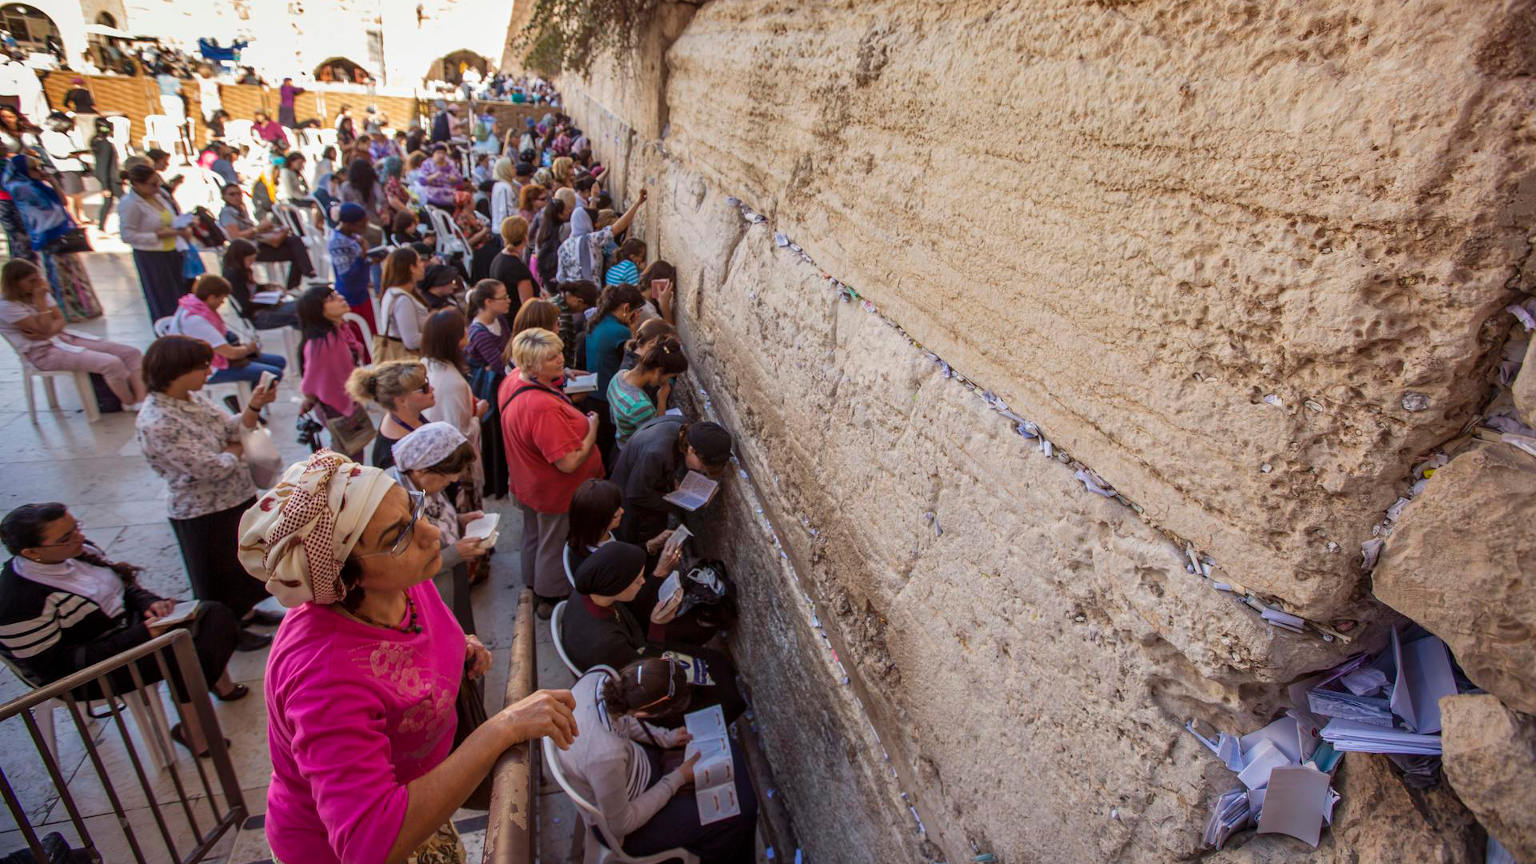 Israel Cropped Jerusalem Wailing Wall Religious Locals